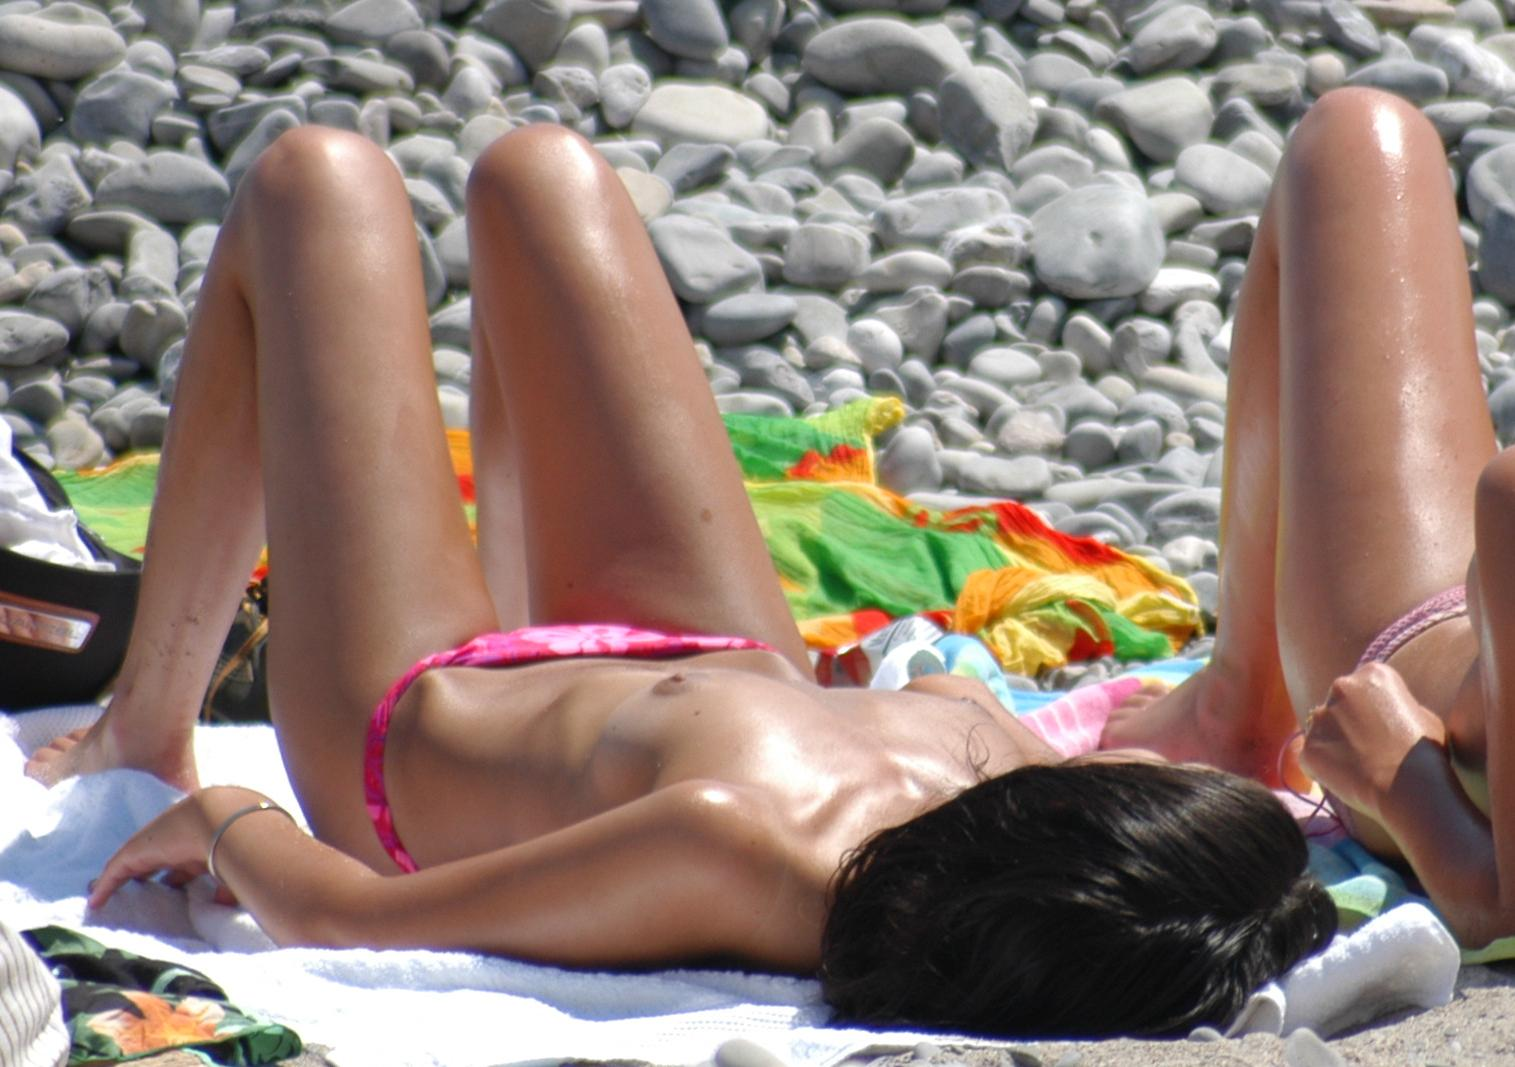 Skinny girl on beach oiled up and ready for fun